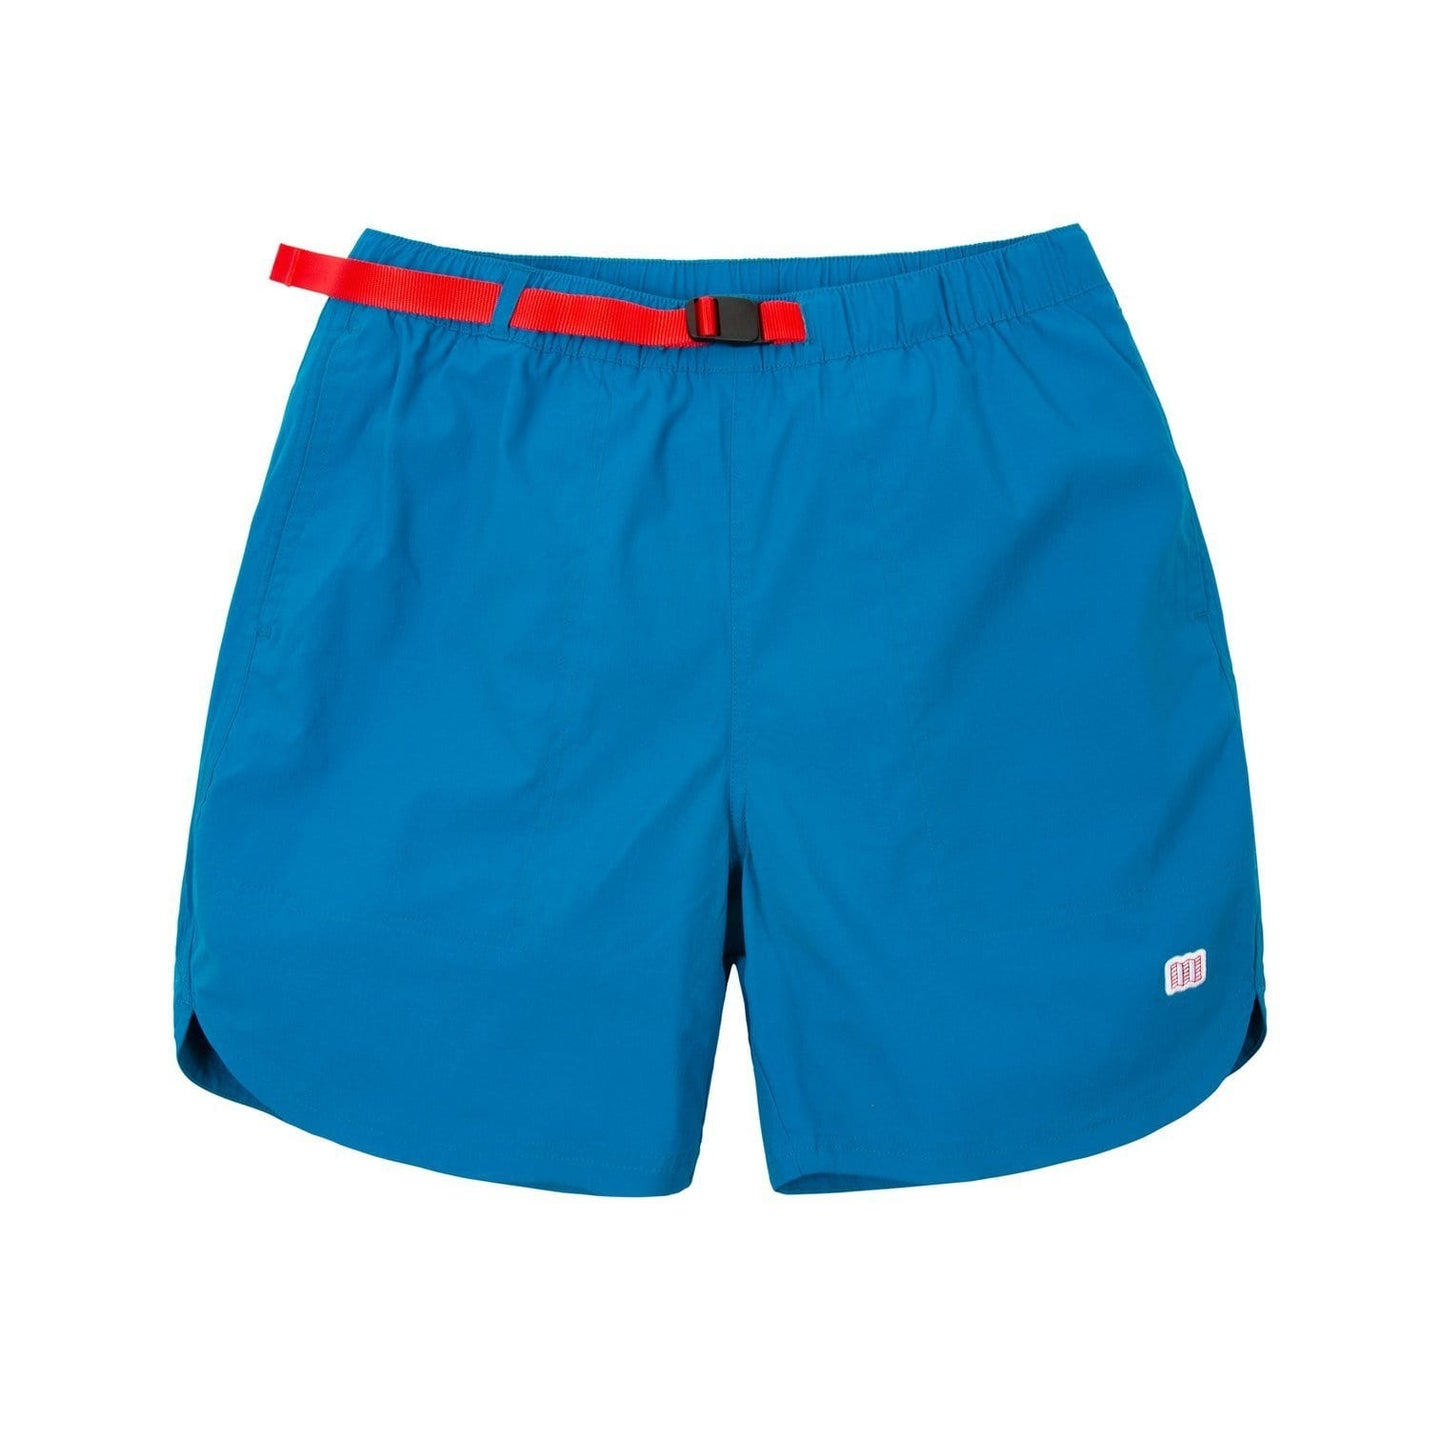 Topo Designs River Shorts / Neighborhood Goods